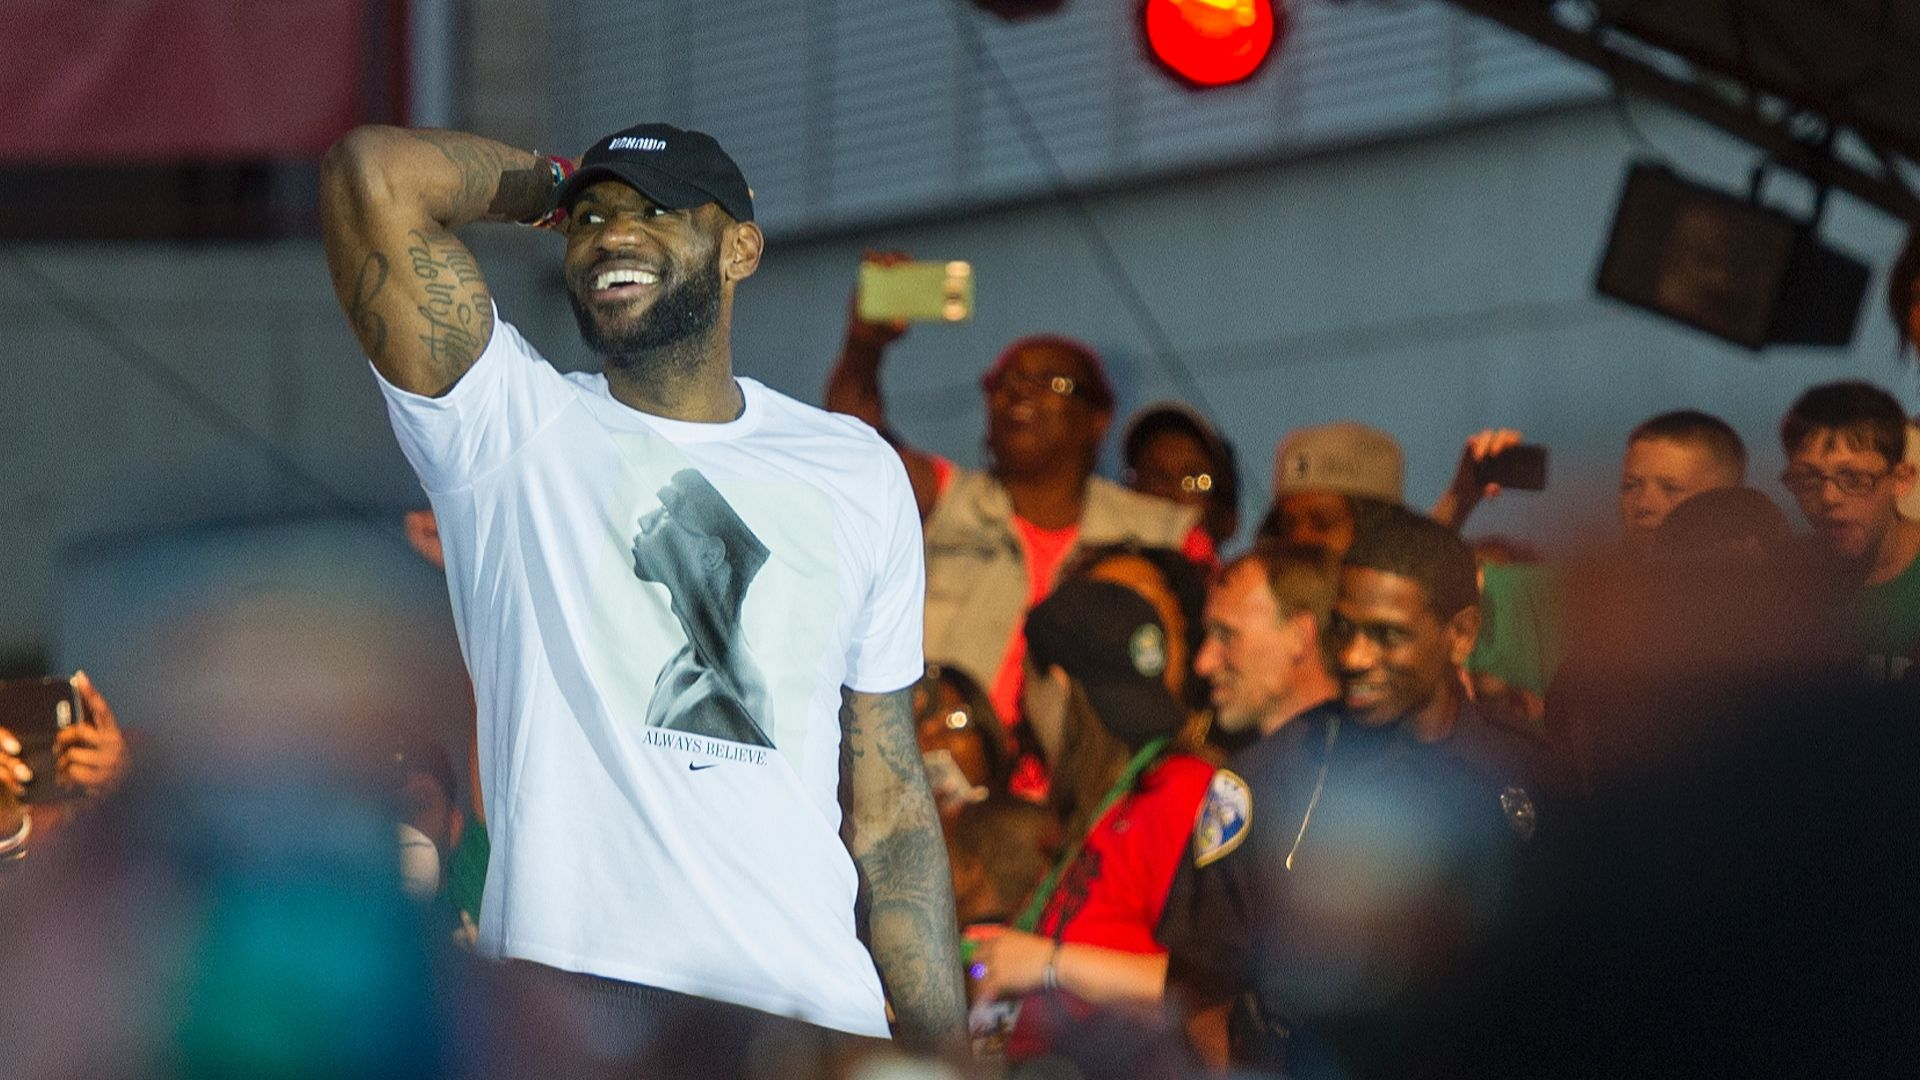 LeBron overcome with emotion in return to Akron